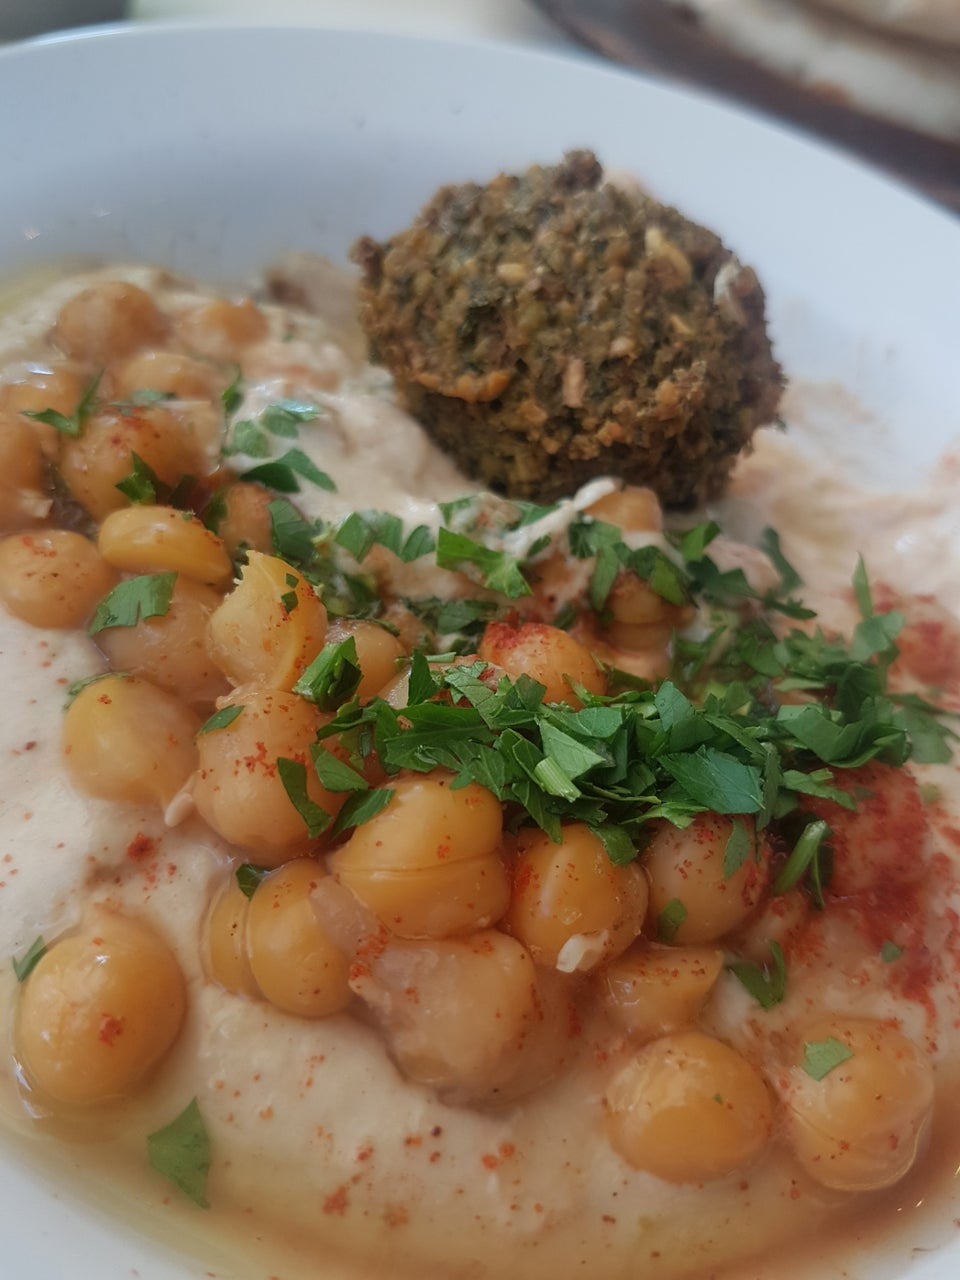 Photo of Hummus Abu Dabi